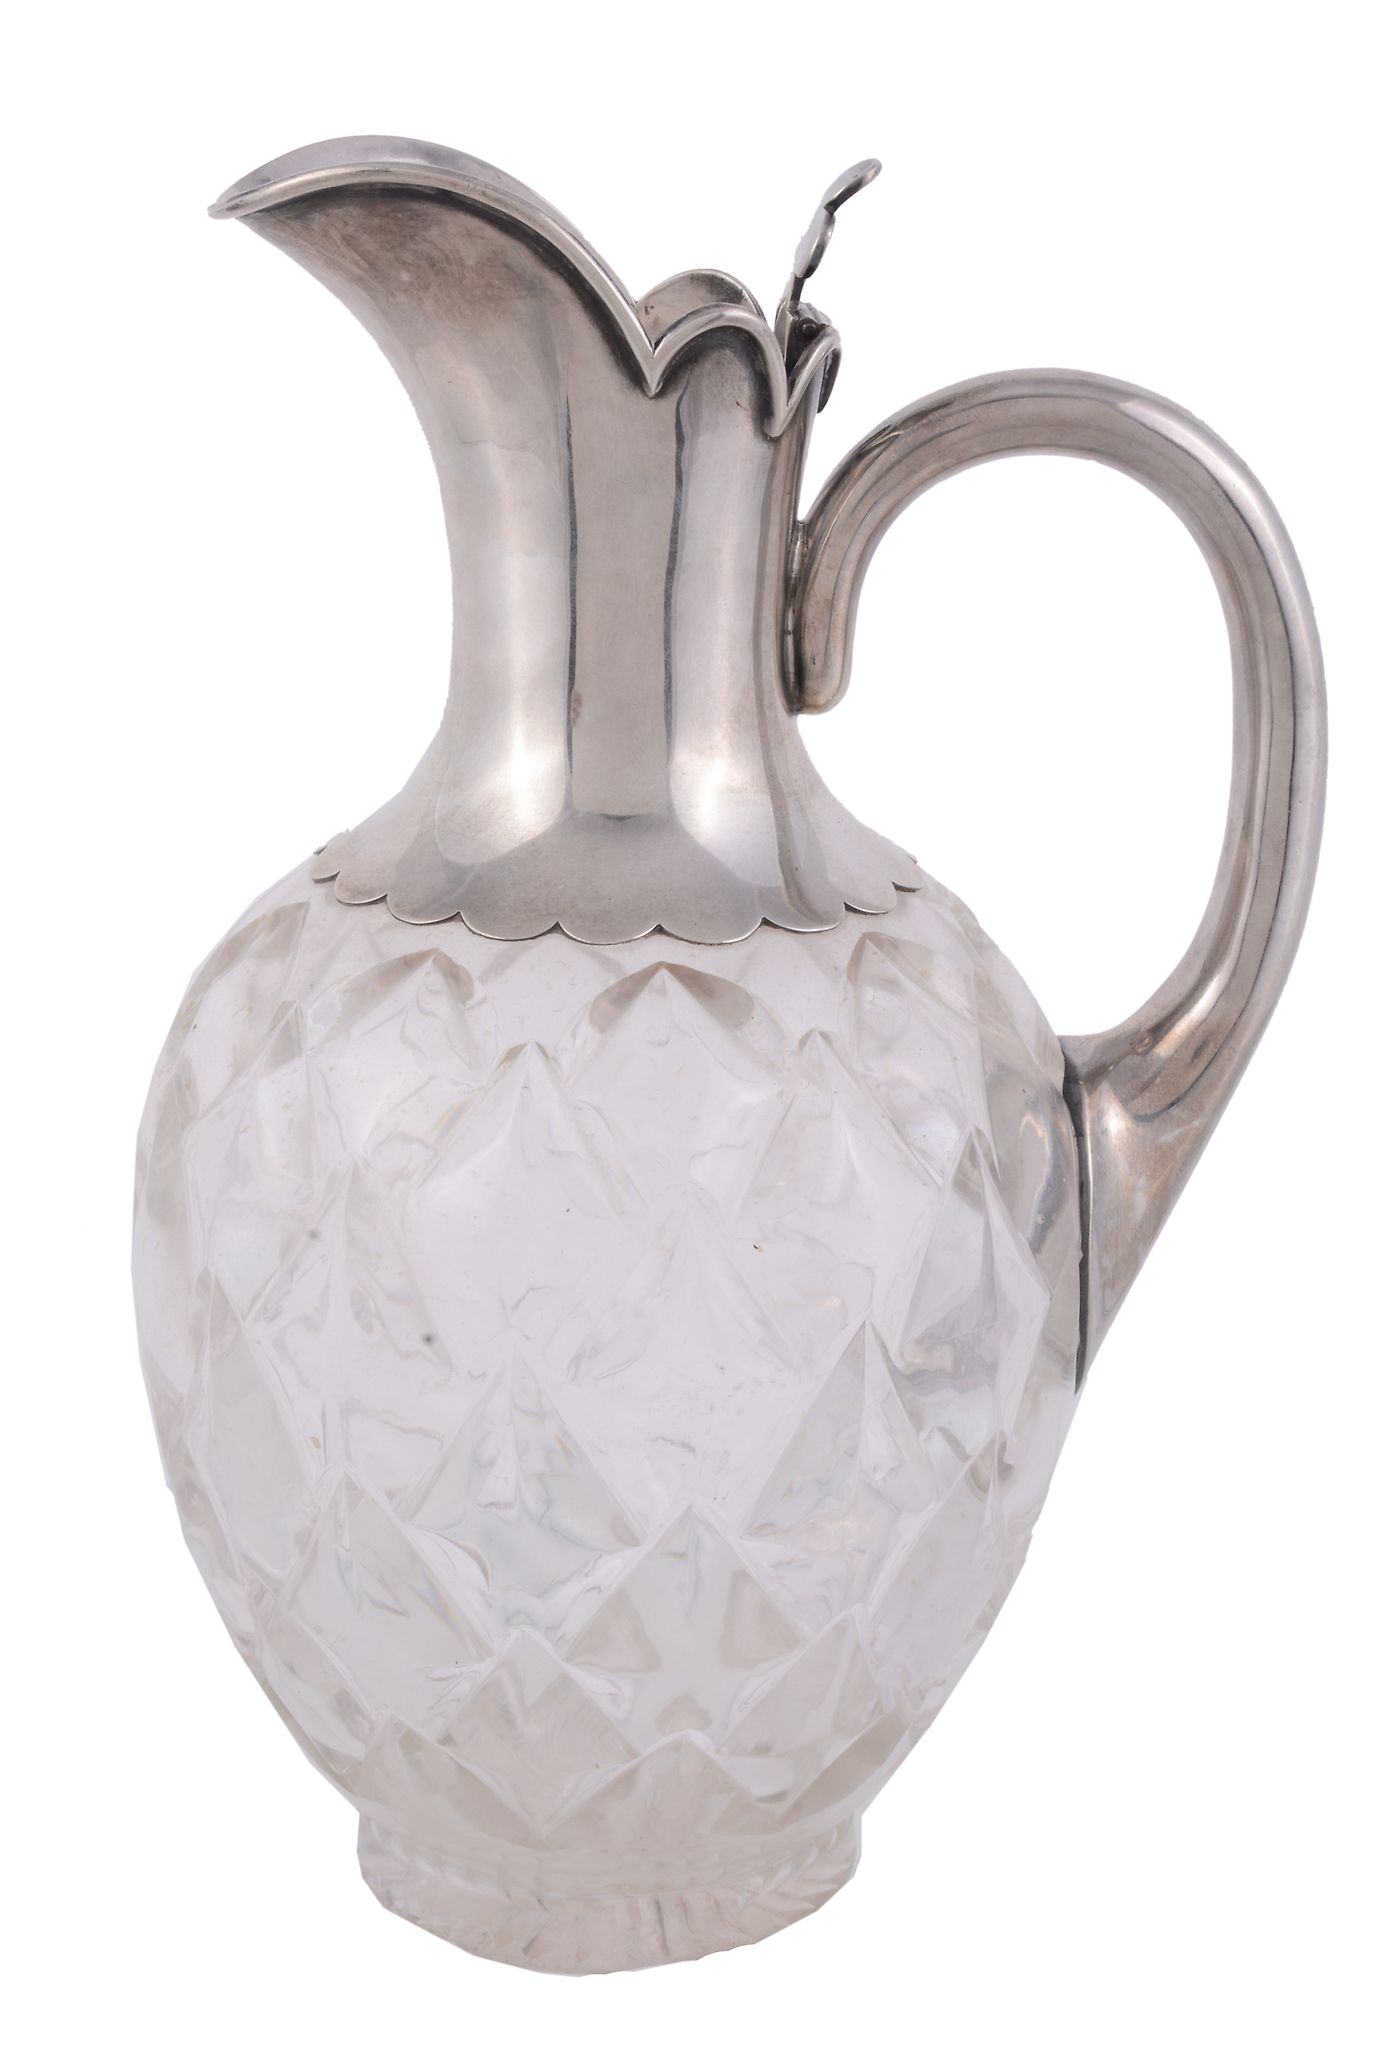 A Victorian claret jug with silver spout and handle